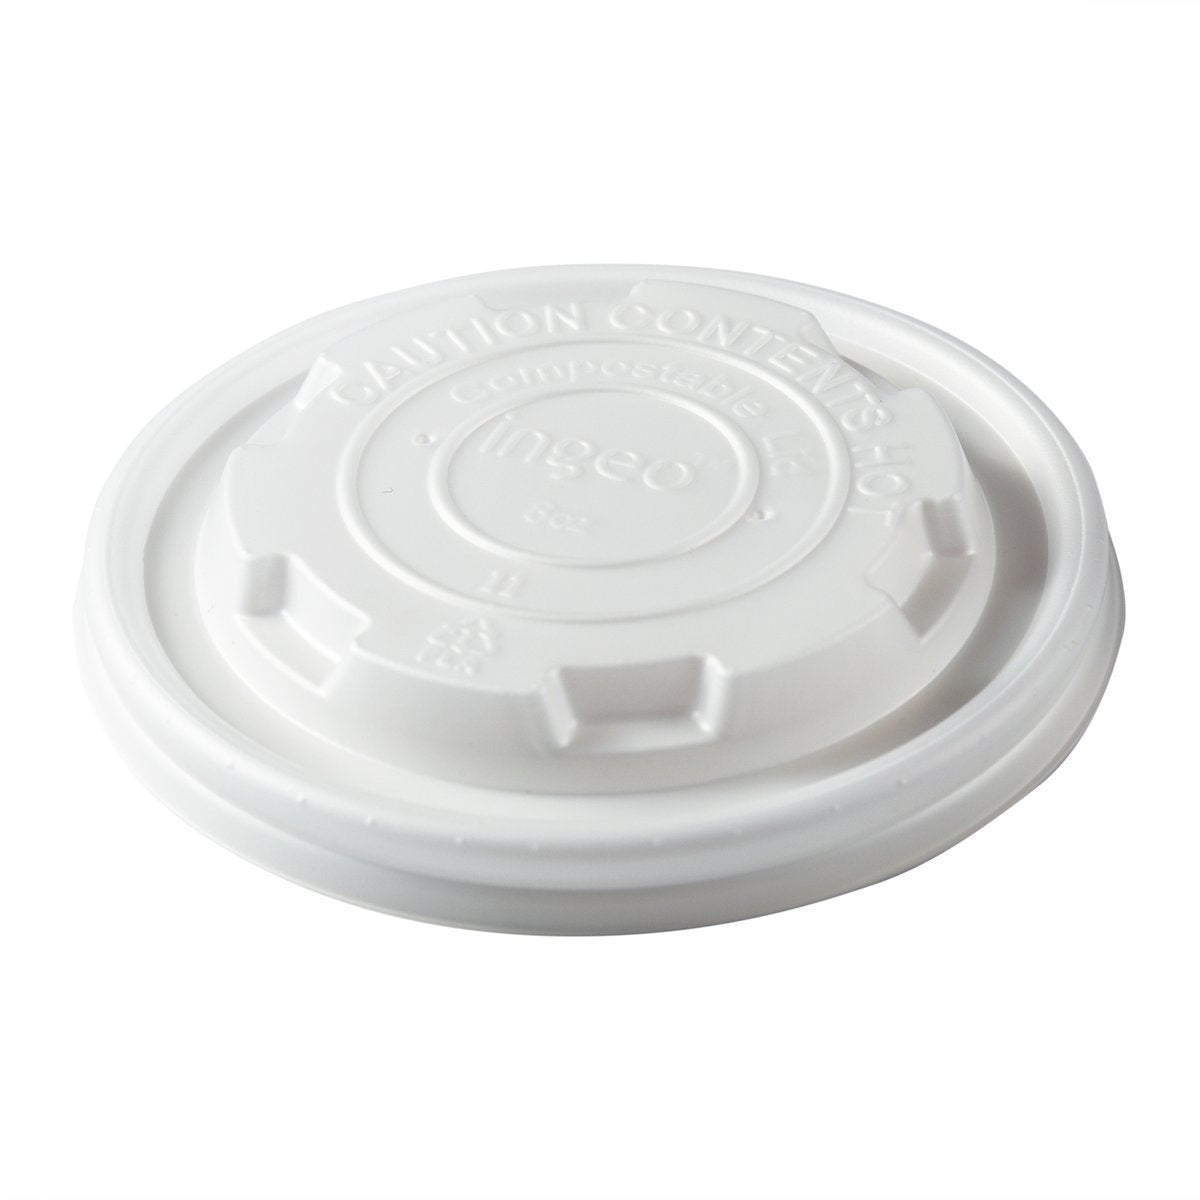 8oz CPLA Food Container Lid